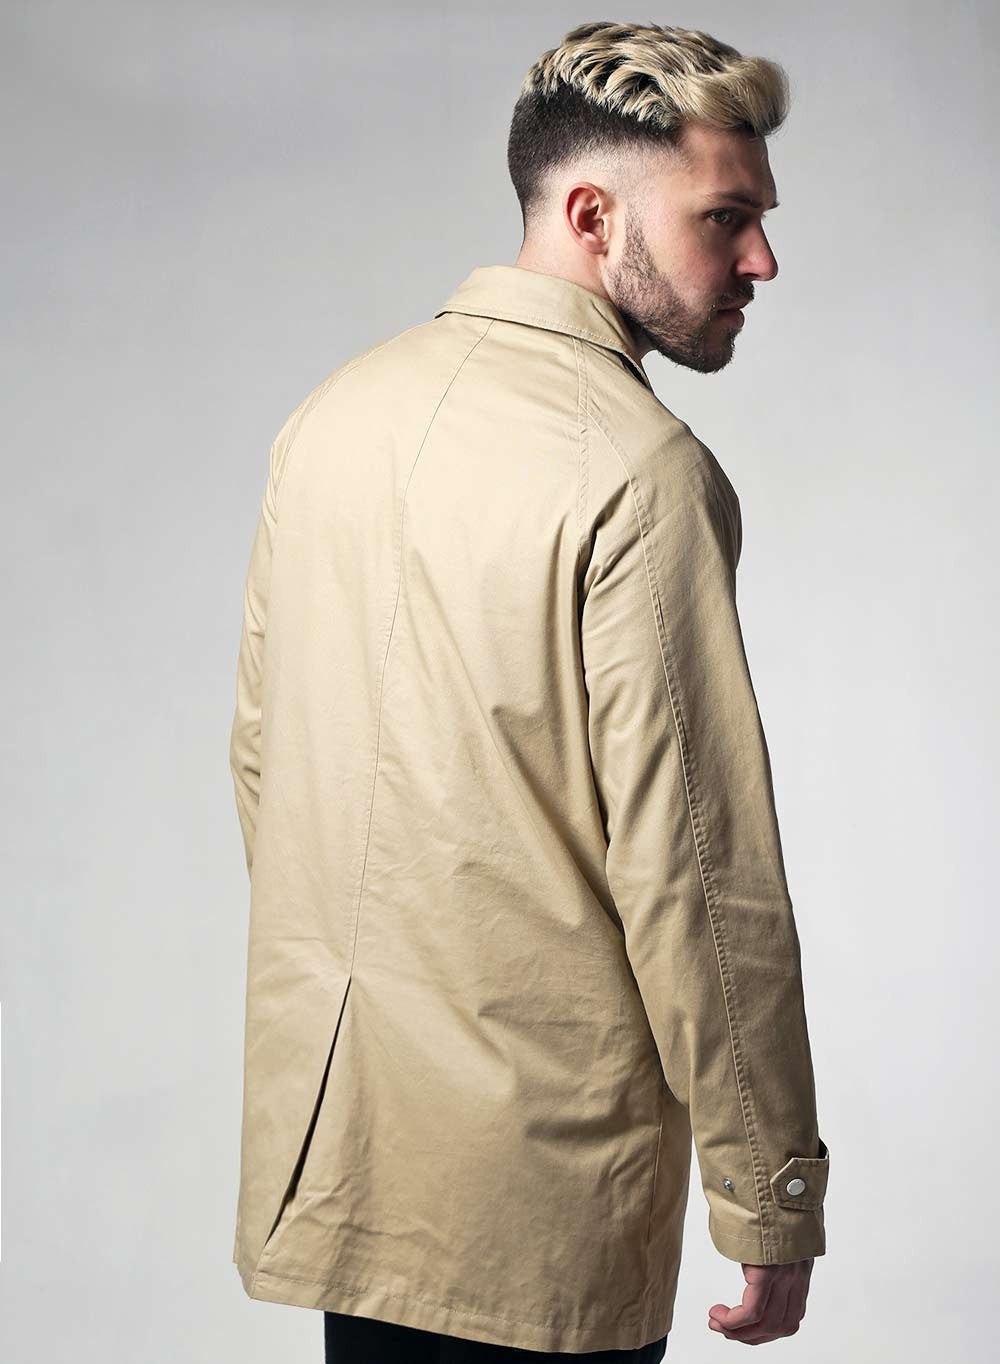 Native Youth Beige Washed Cotton Mac - LoveClothing.com - 2